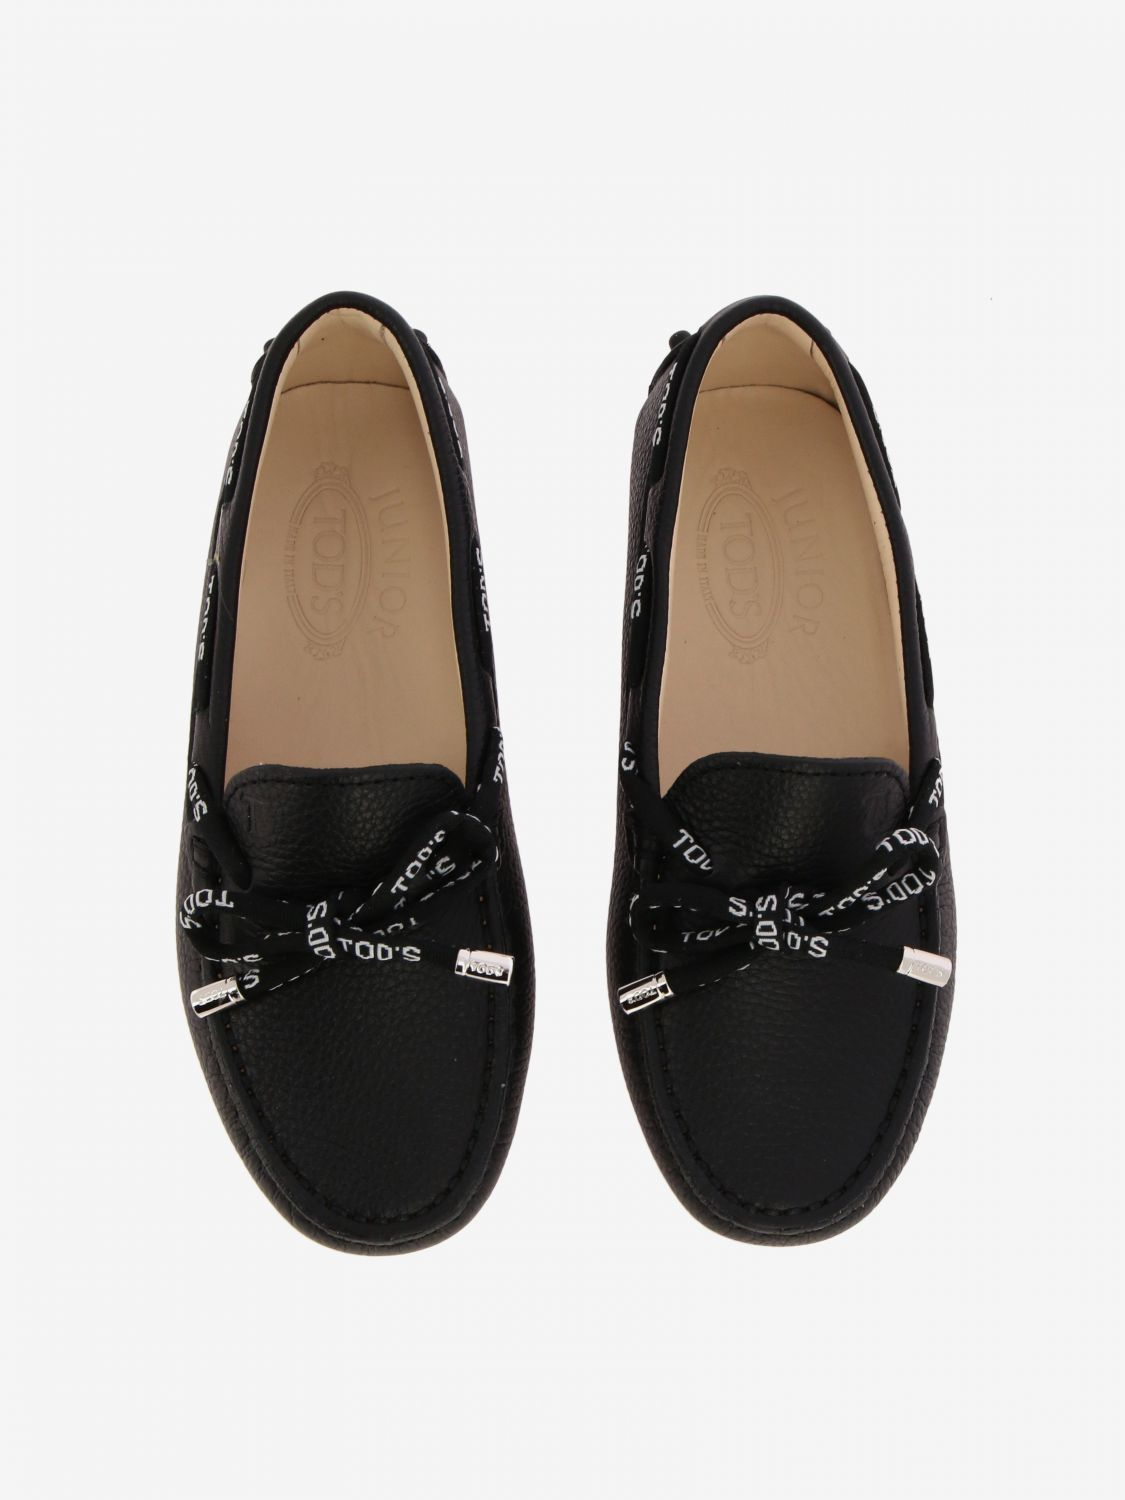 Shoes kids Tod's black 3